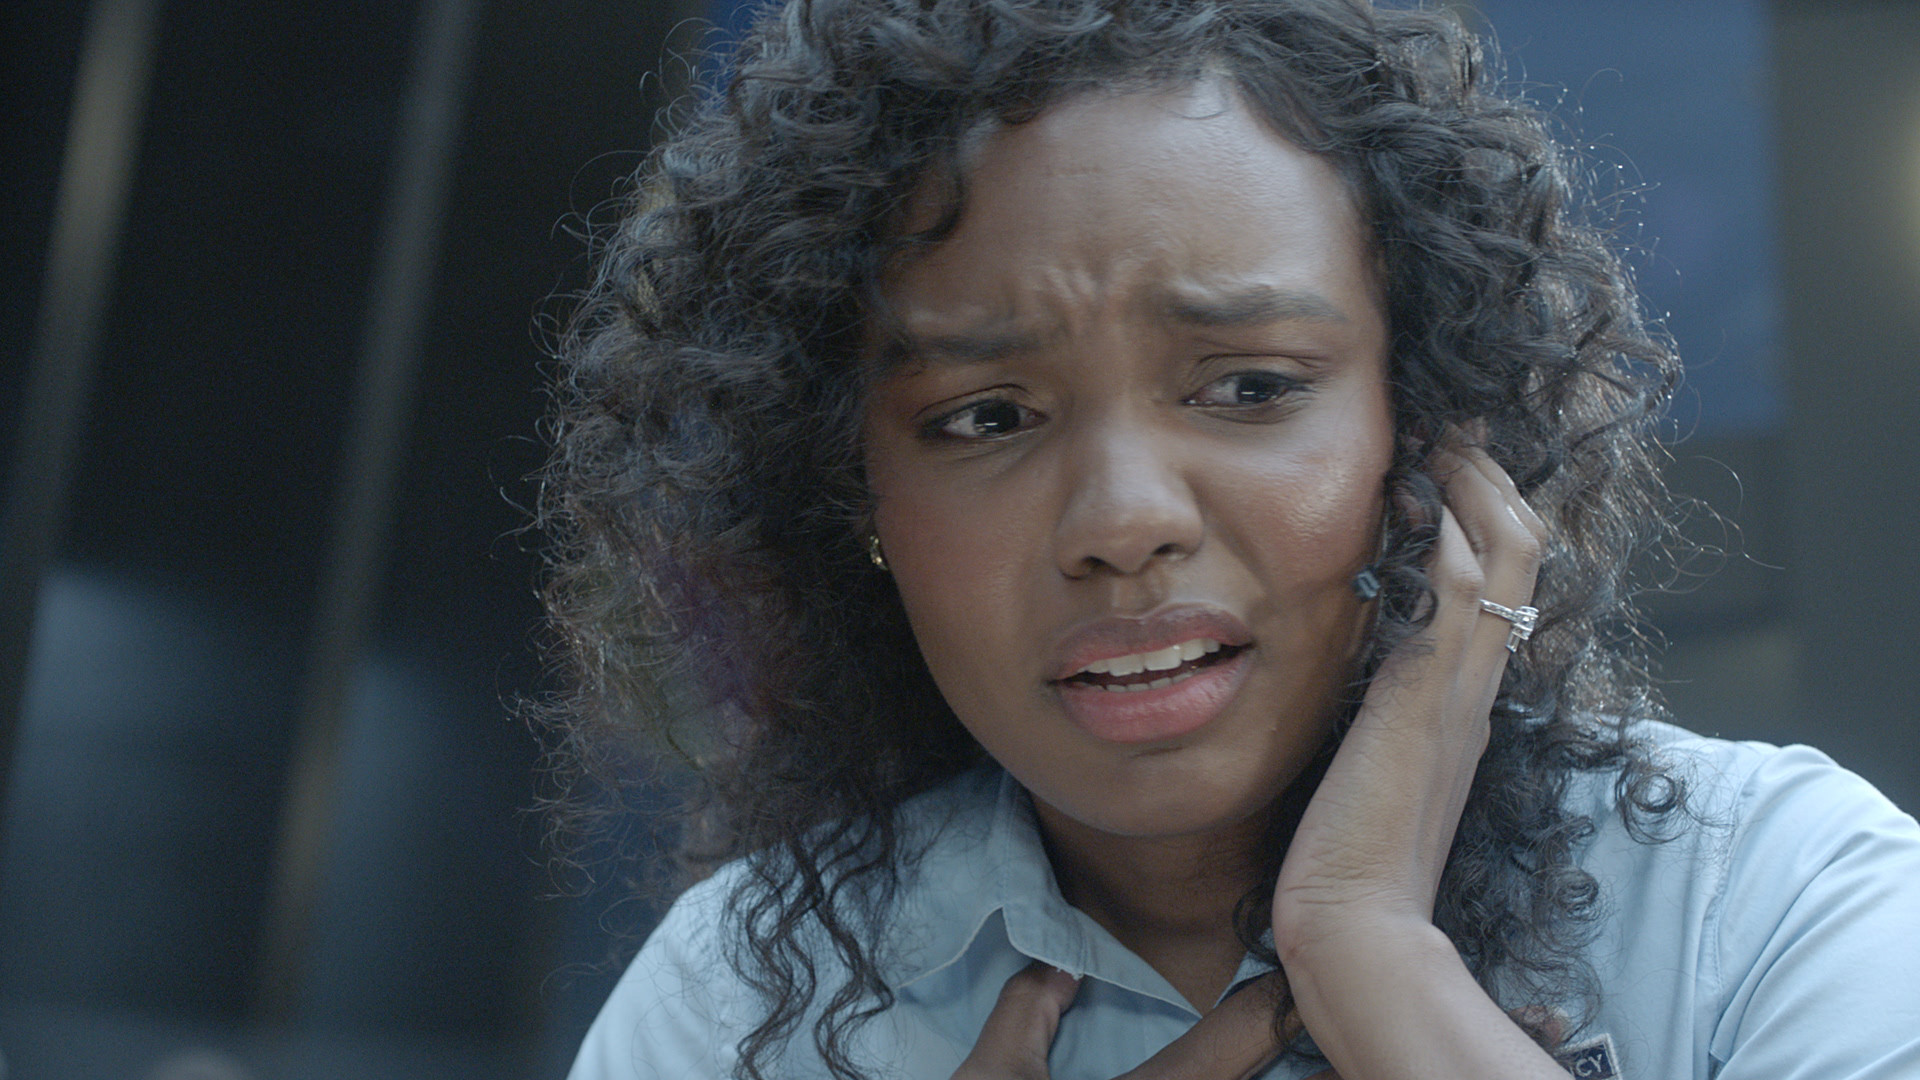 9-1-1: LONE STAR: Sierra McClain in 9-1-1: LONE STAR, debuting in a special two-night series premiere Sunday, Jan. 19 (8:00-9:00 PM ET LIVE to all Time Zones), following the NFC CHAMPIONSHIP GAME; and Monday, Jan. 20 (9:00-10:00 PM ET/PT) on FOX. ©2020 Fox Media LLC. CR: FOX.